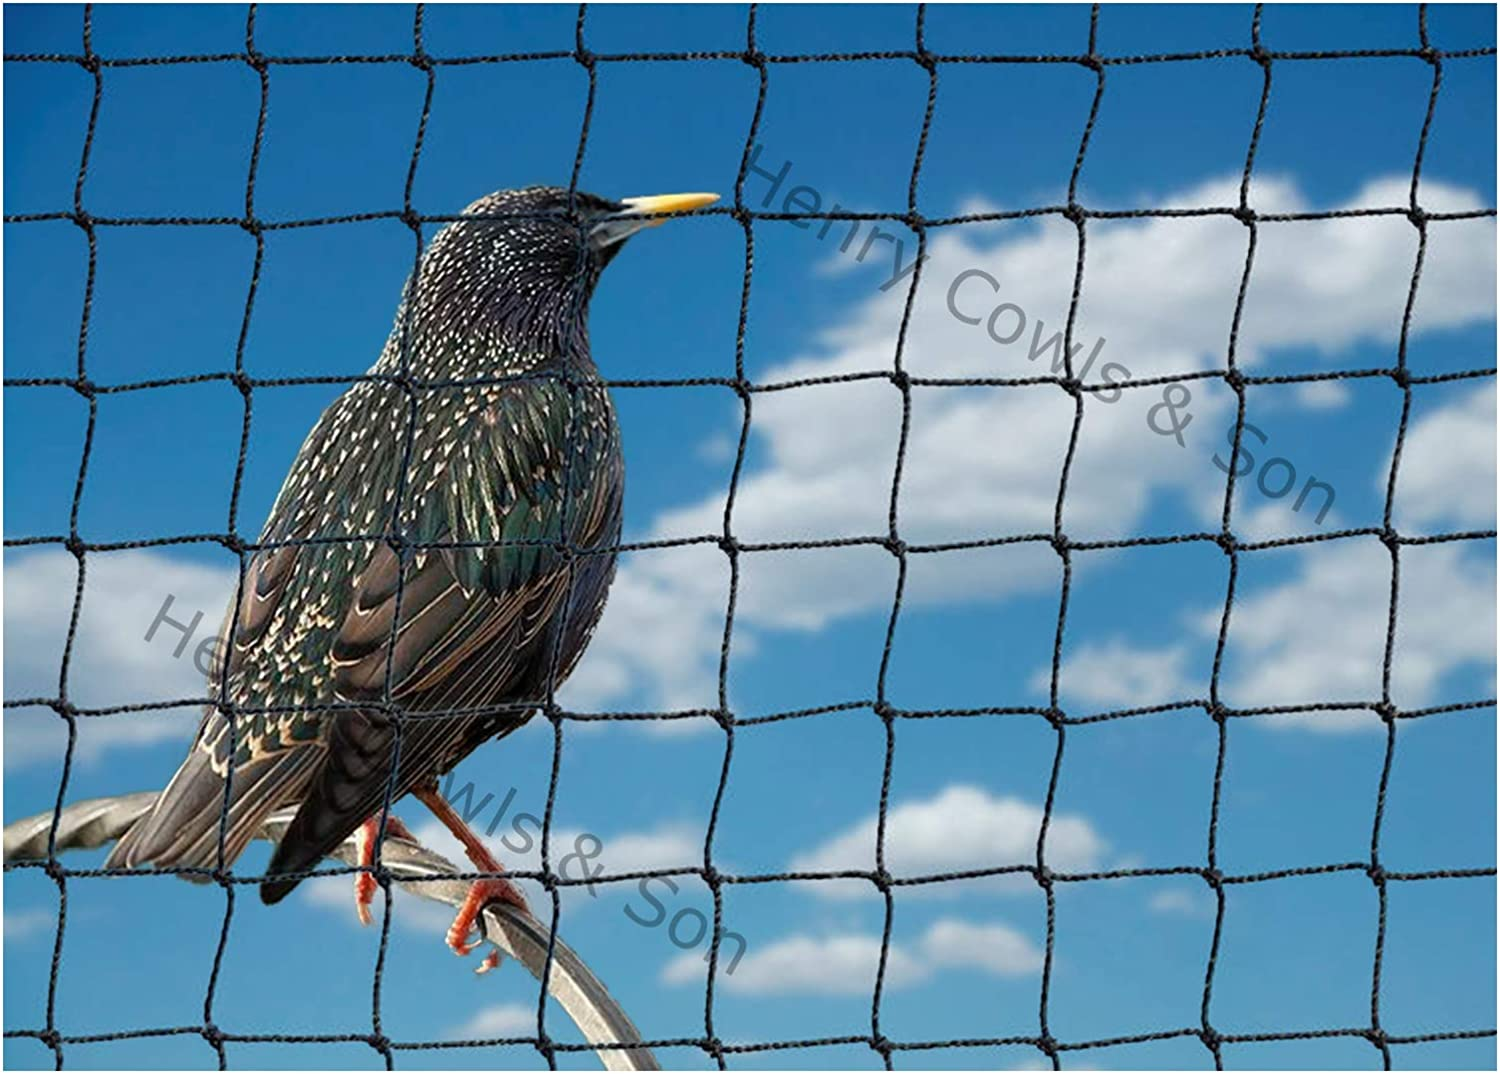 Bird Netting For the Garden 5m x 10m 28mm Anti Starling Knotted 1 1//8 Mesh Heavy Duty Black Net